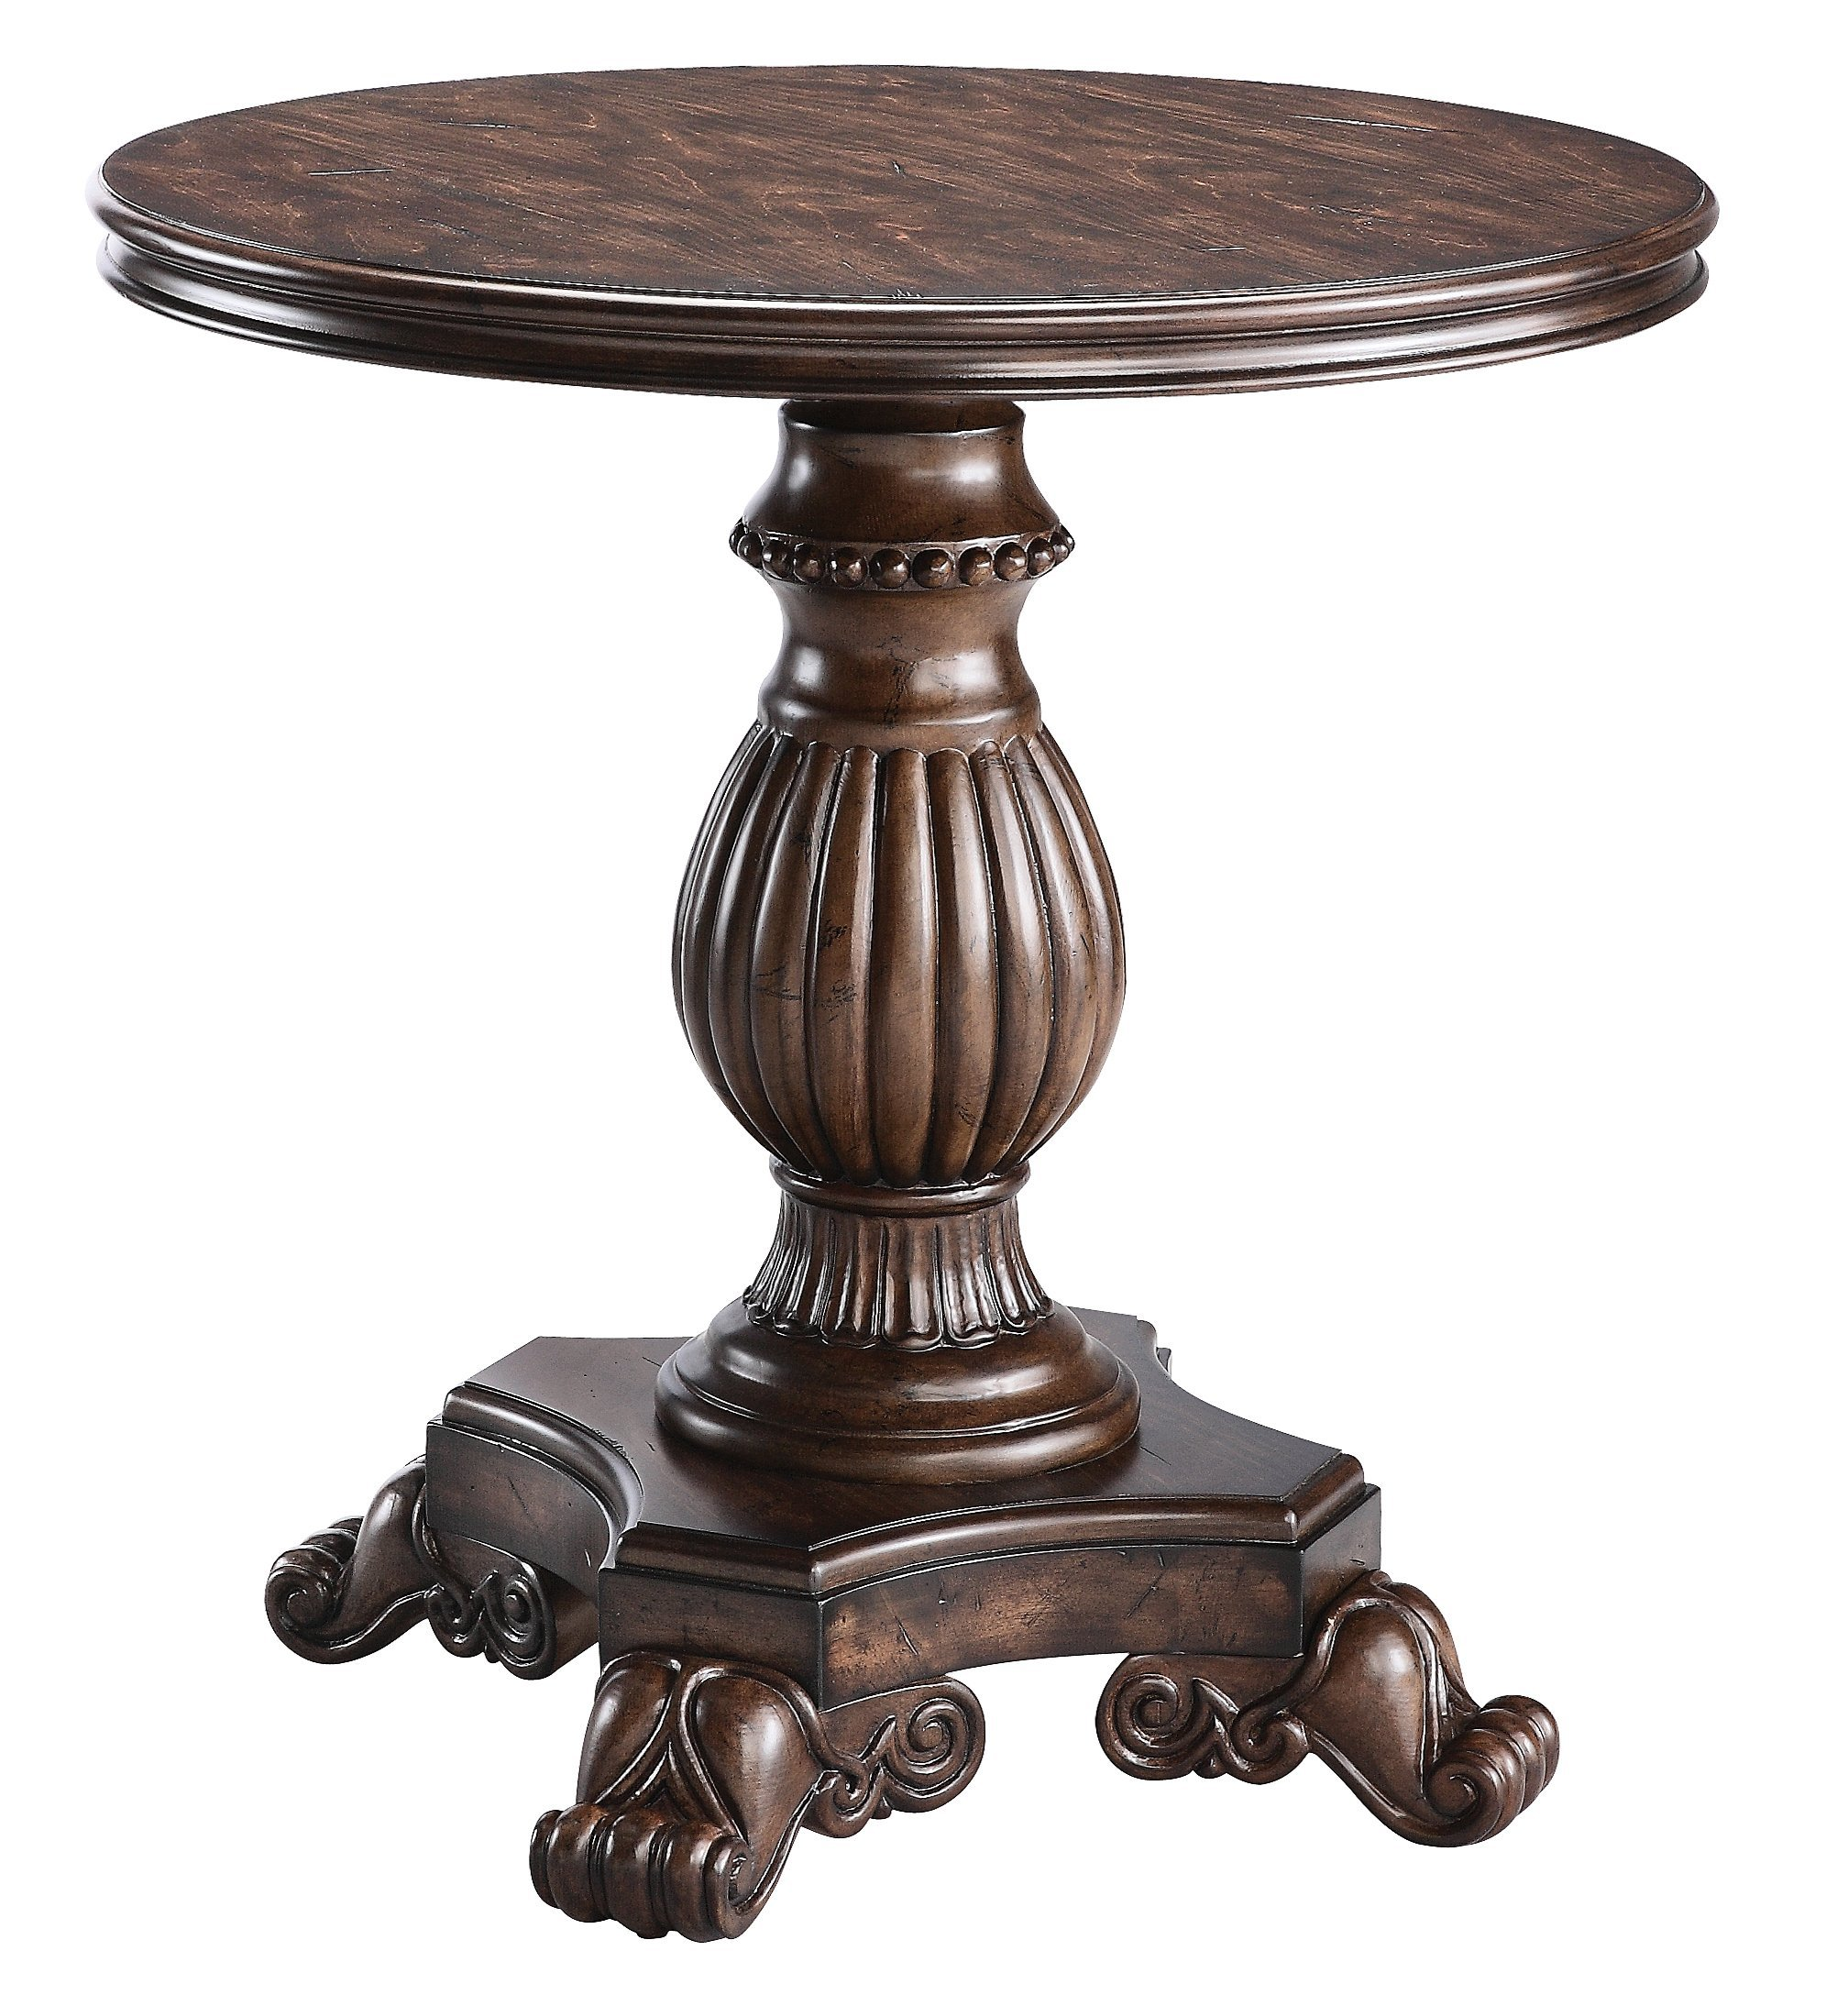 Stein World Furniture Ellsworth Pedestal Table, Rich Dark Distressed by Stein World Furniture